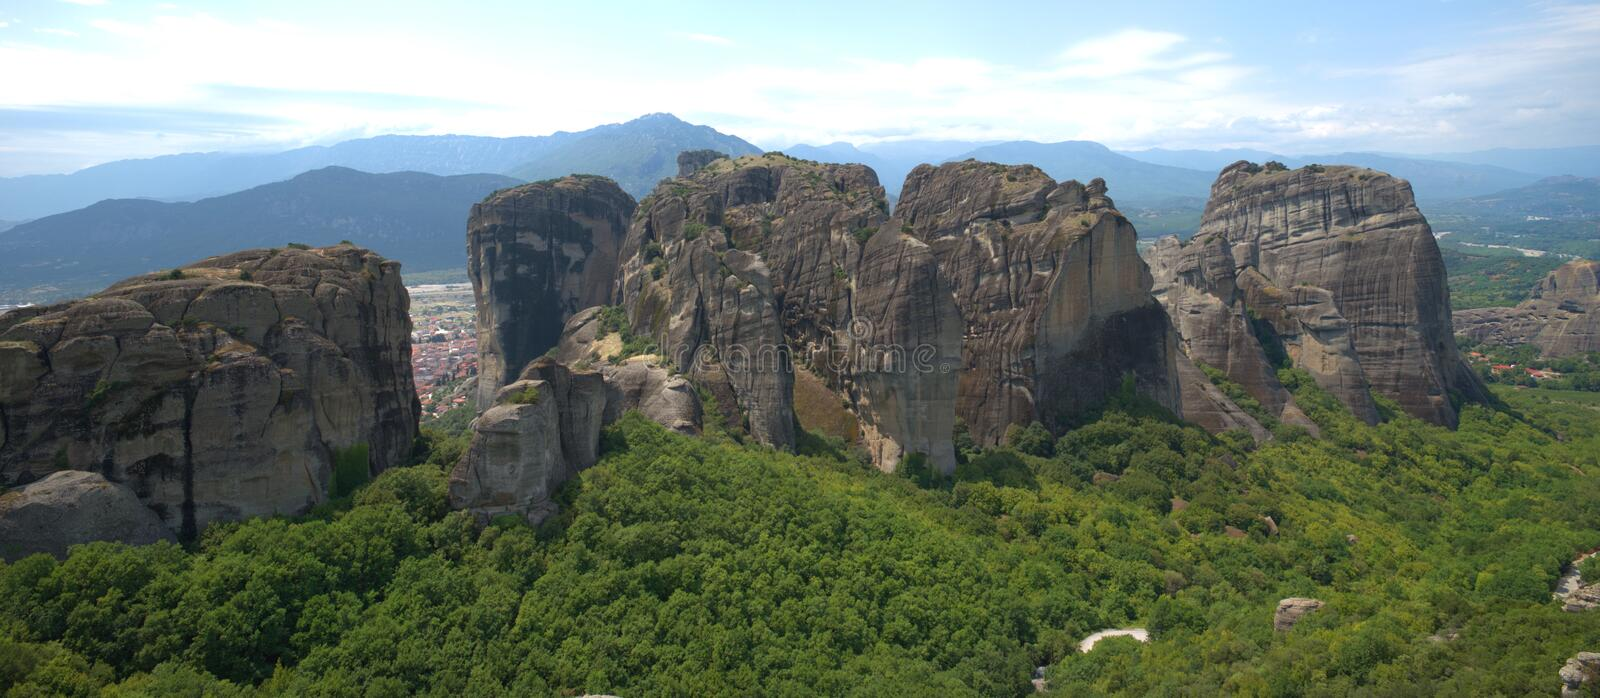 8/10/2020 Greece , Meteora . A unique phenomenon of huge rocks and Byzantine. Metéora is the second largest monastic and pilgrimage area in Greece after Mount royalty free stock photography